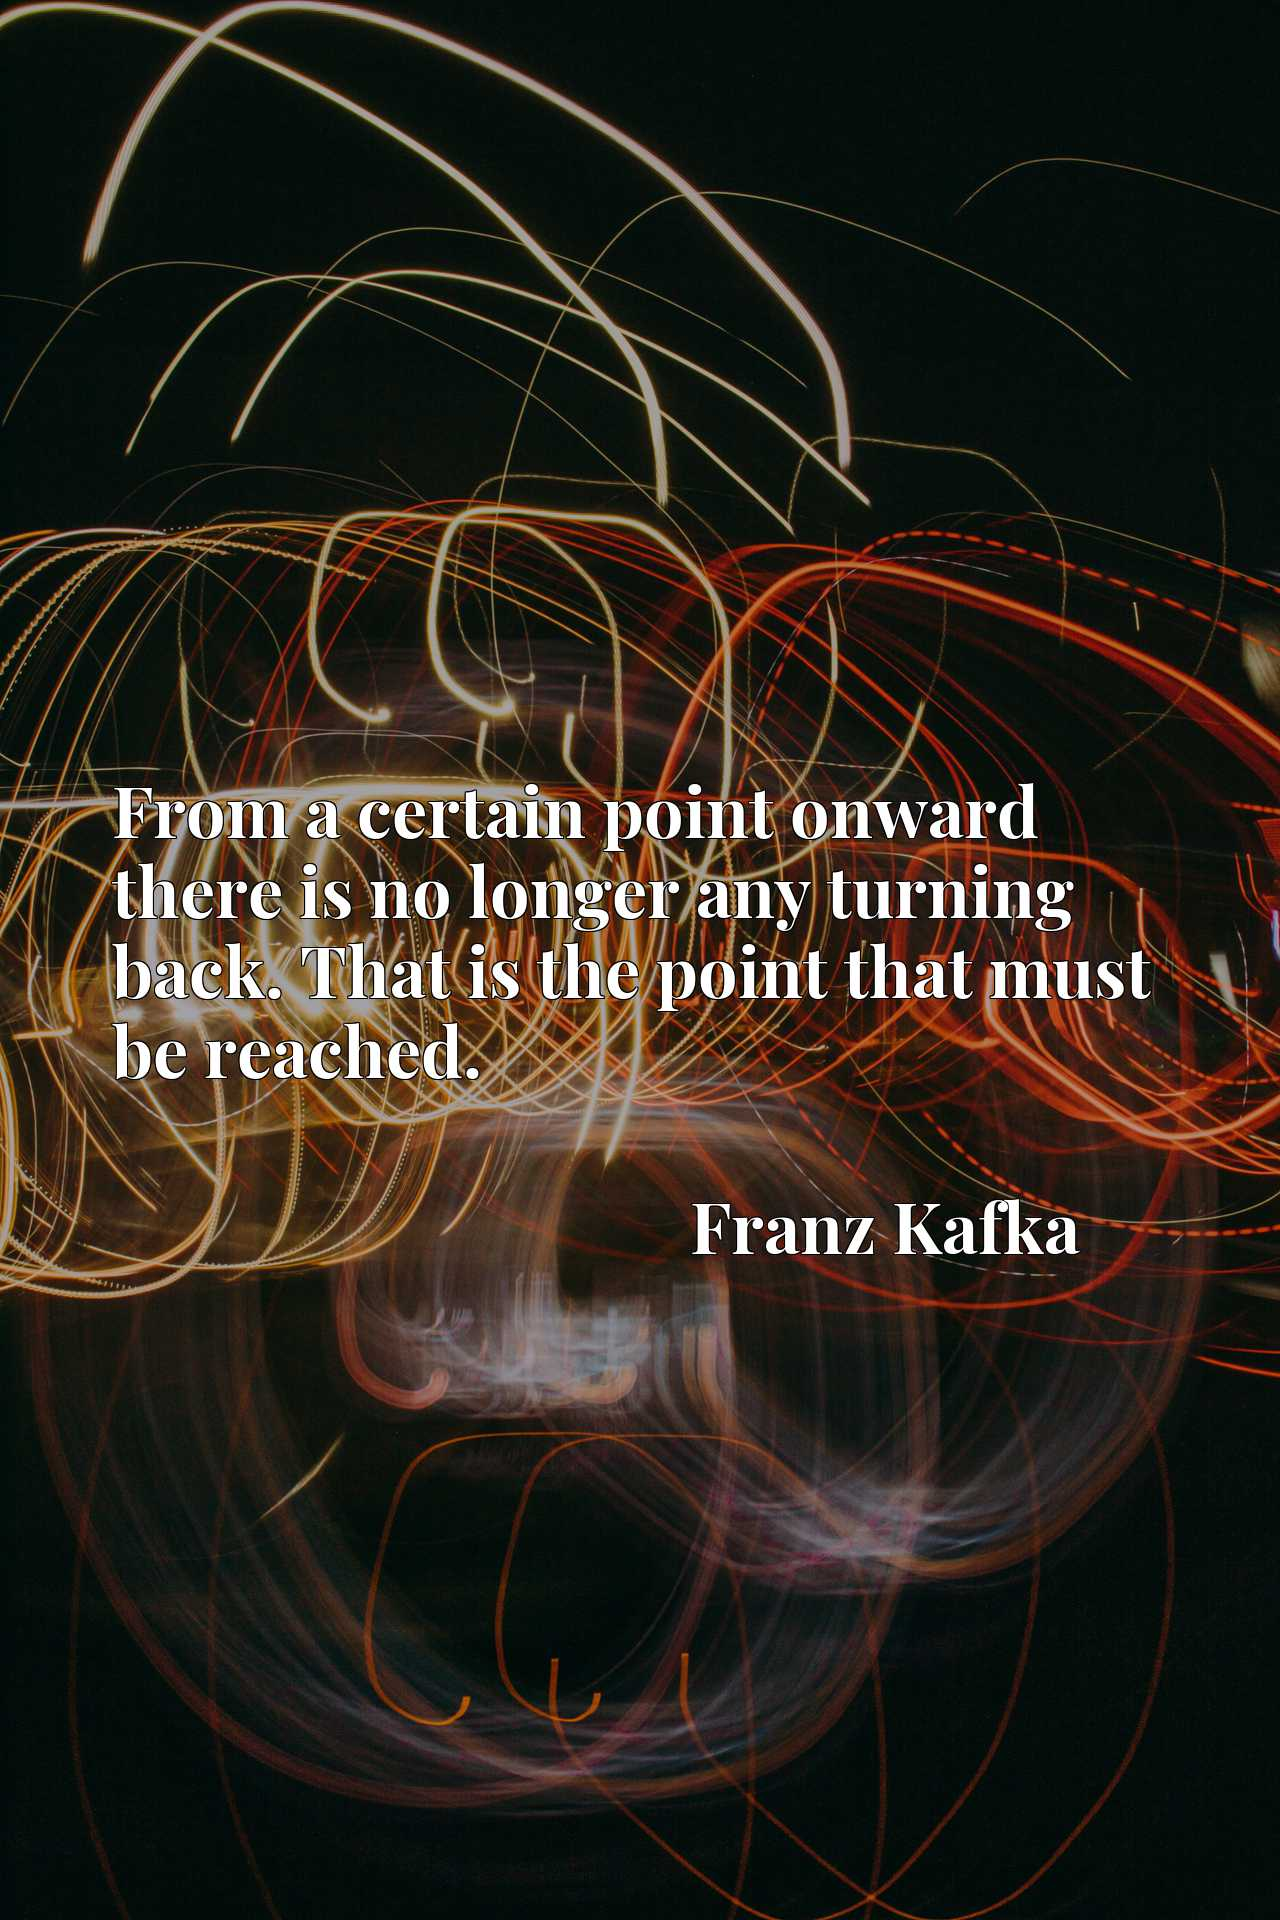 Quote Picture :From a certain point onward there is no longer any turning back. That is the point that must be reached.